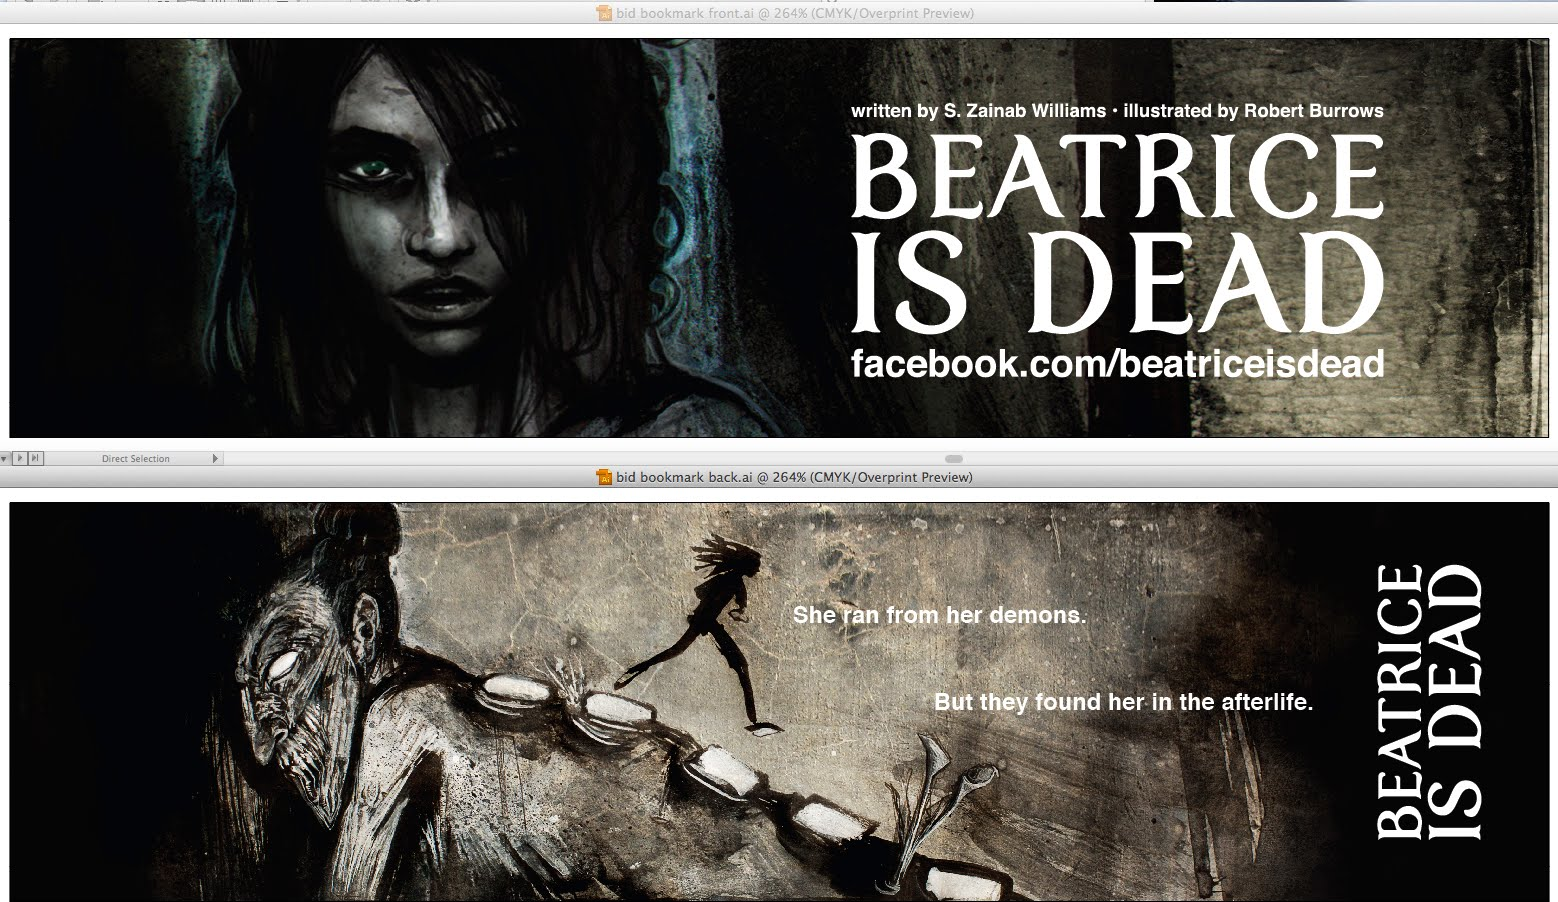 Beatrice is Dead bookmark